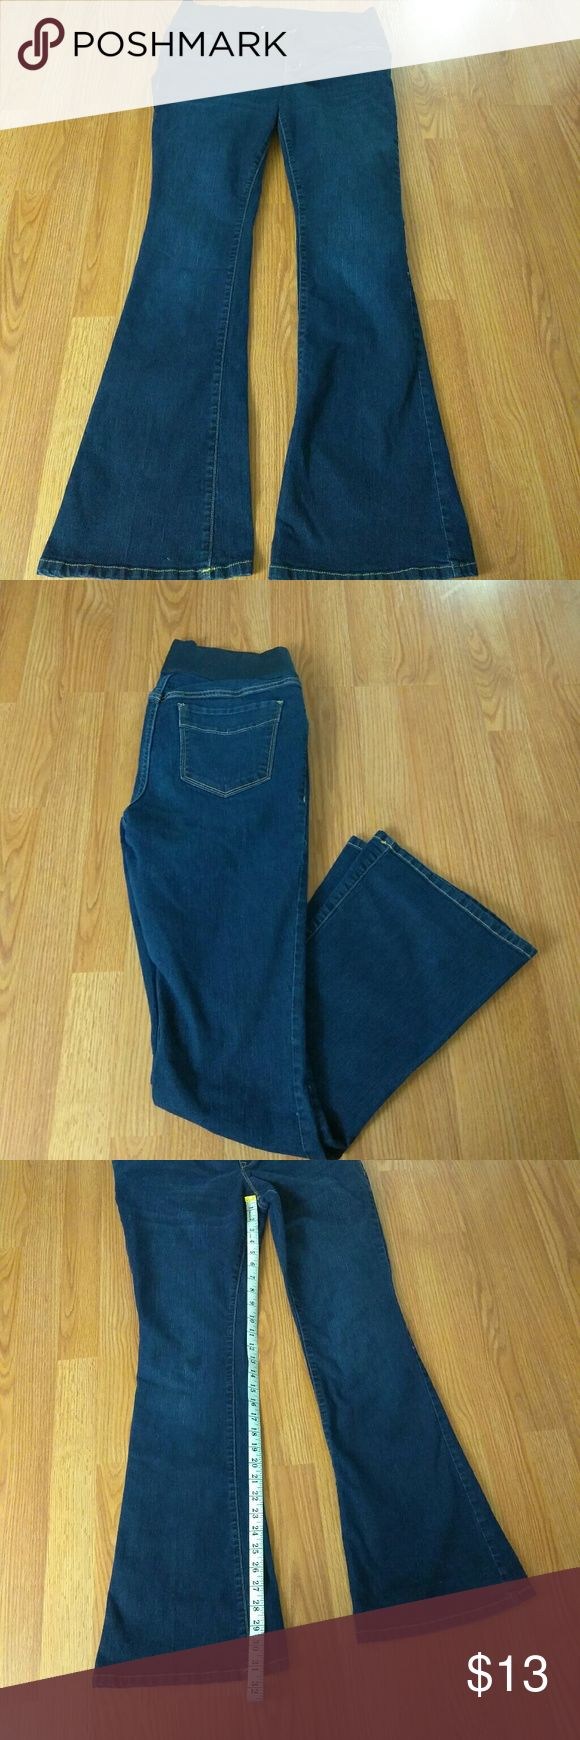 OLD NAVY DARK WASH MATERNITY JEANS SIZE 12 Old Navy maternity jeans oh pretty mama dark wash flare legged in size 12.. measurements in photos thank you Old Navy Jeans Flare & Wide Leg